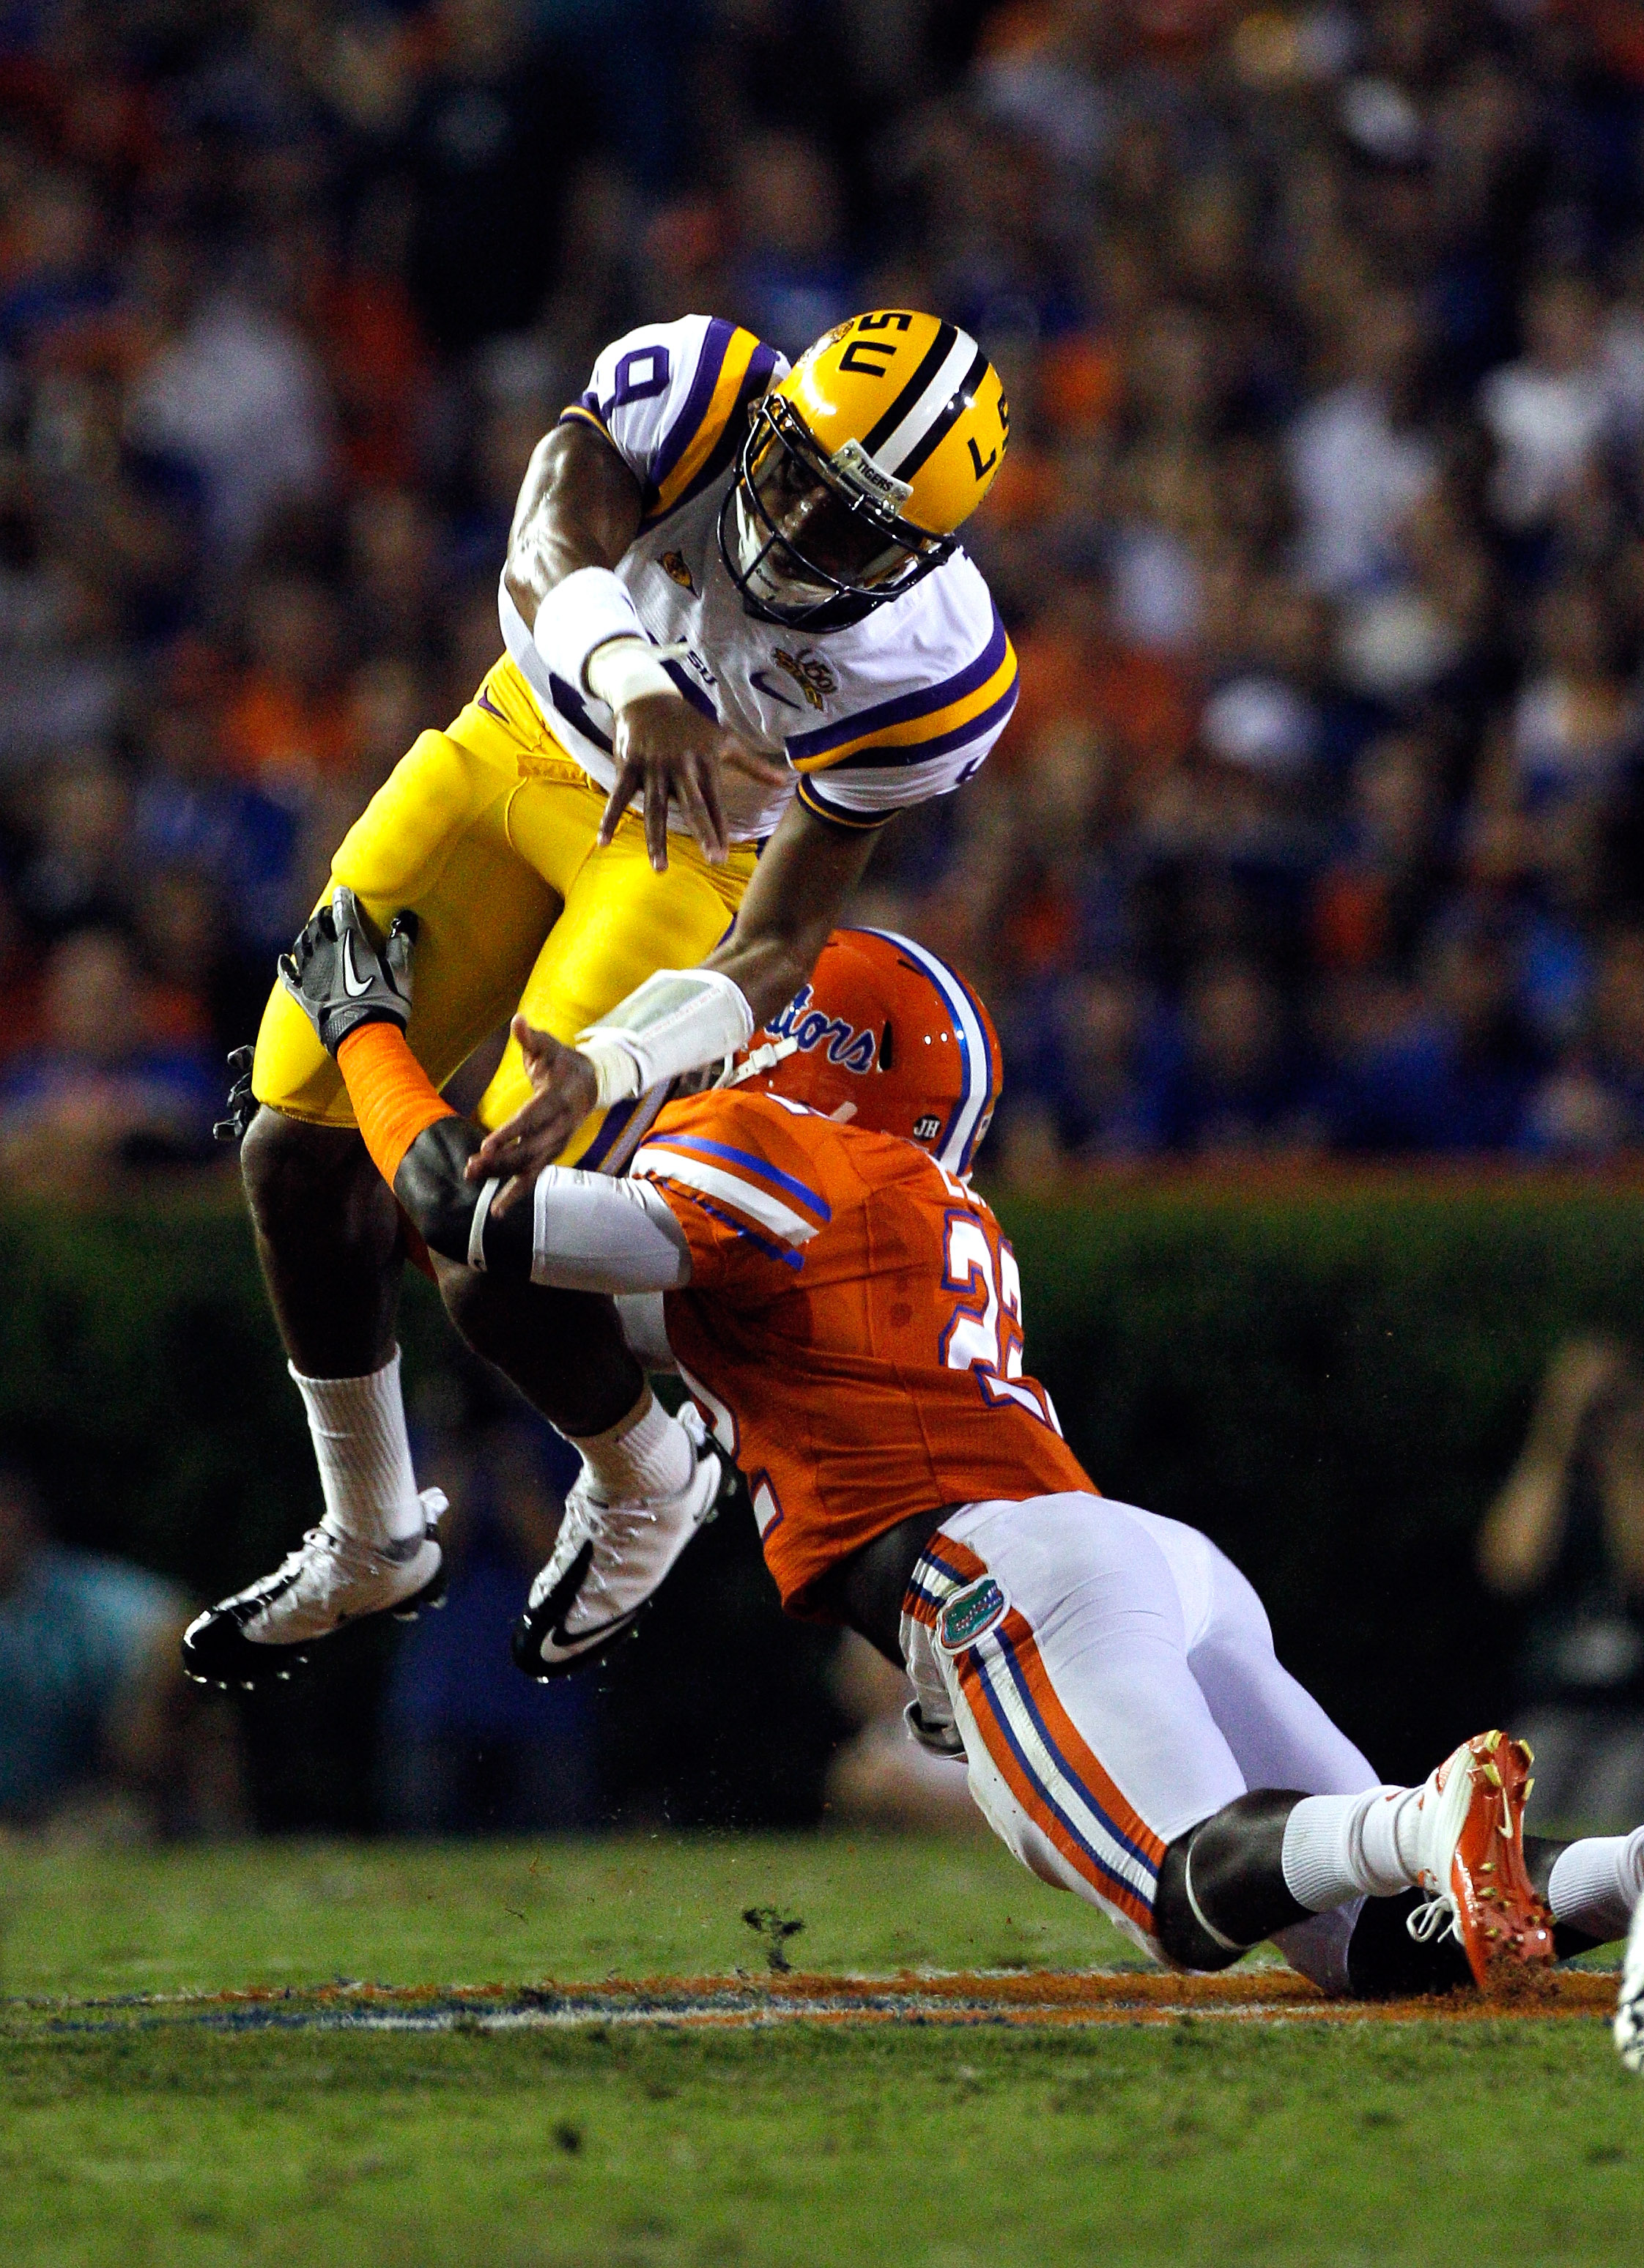 GAINESVILLE, FL - OCTOBER 09:  Quarterback Jordan Jefferson #9 of the Louisiana State University Tigers is tackled by Matt Elam #22 of the Florida Gators during the game at Ben Hill Griffin Stadium on October 9, 2010 in Gainesville, Florida.  (Photo by Sa